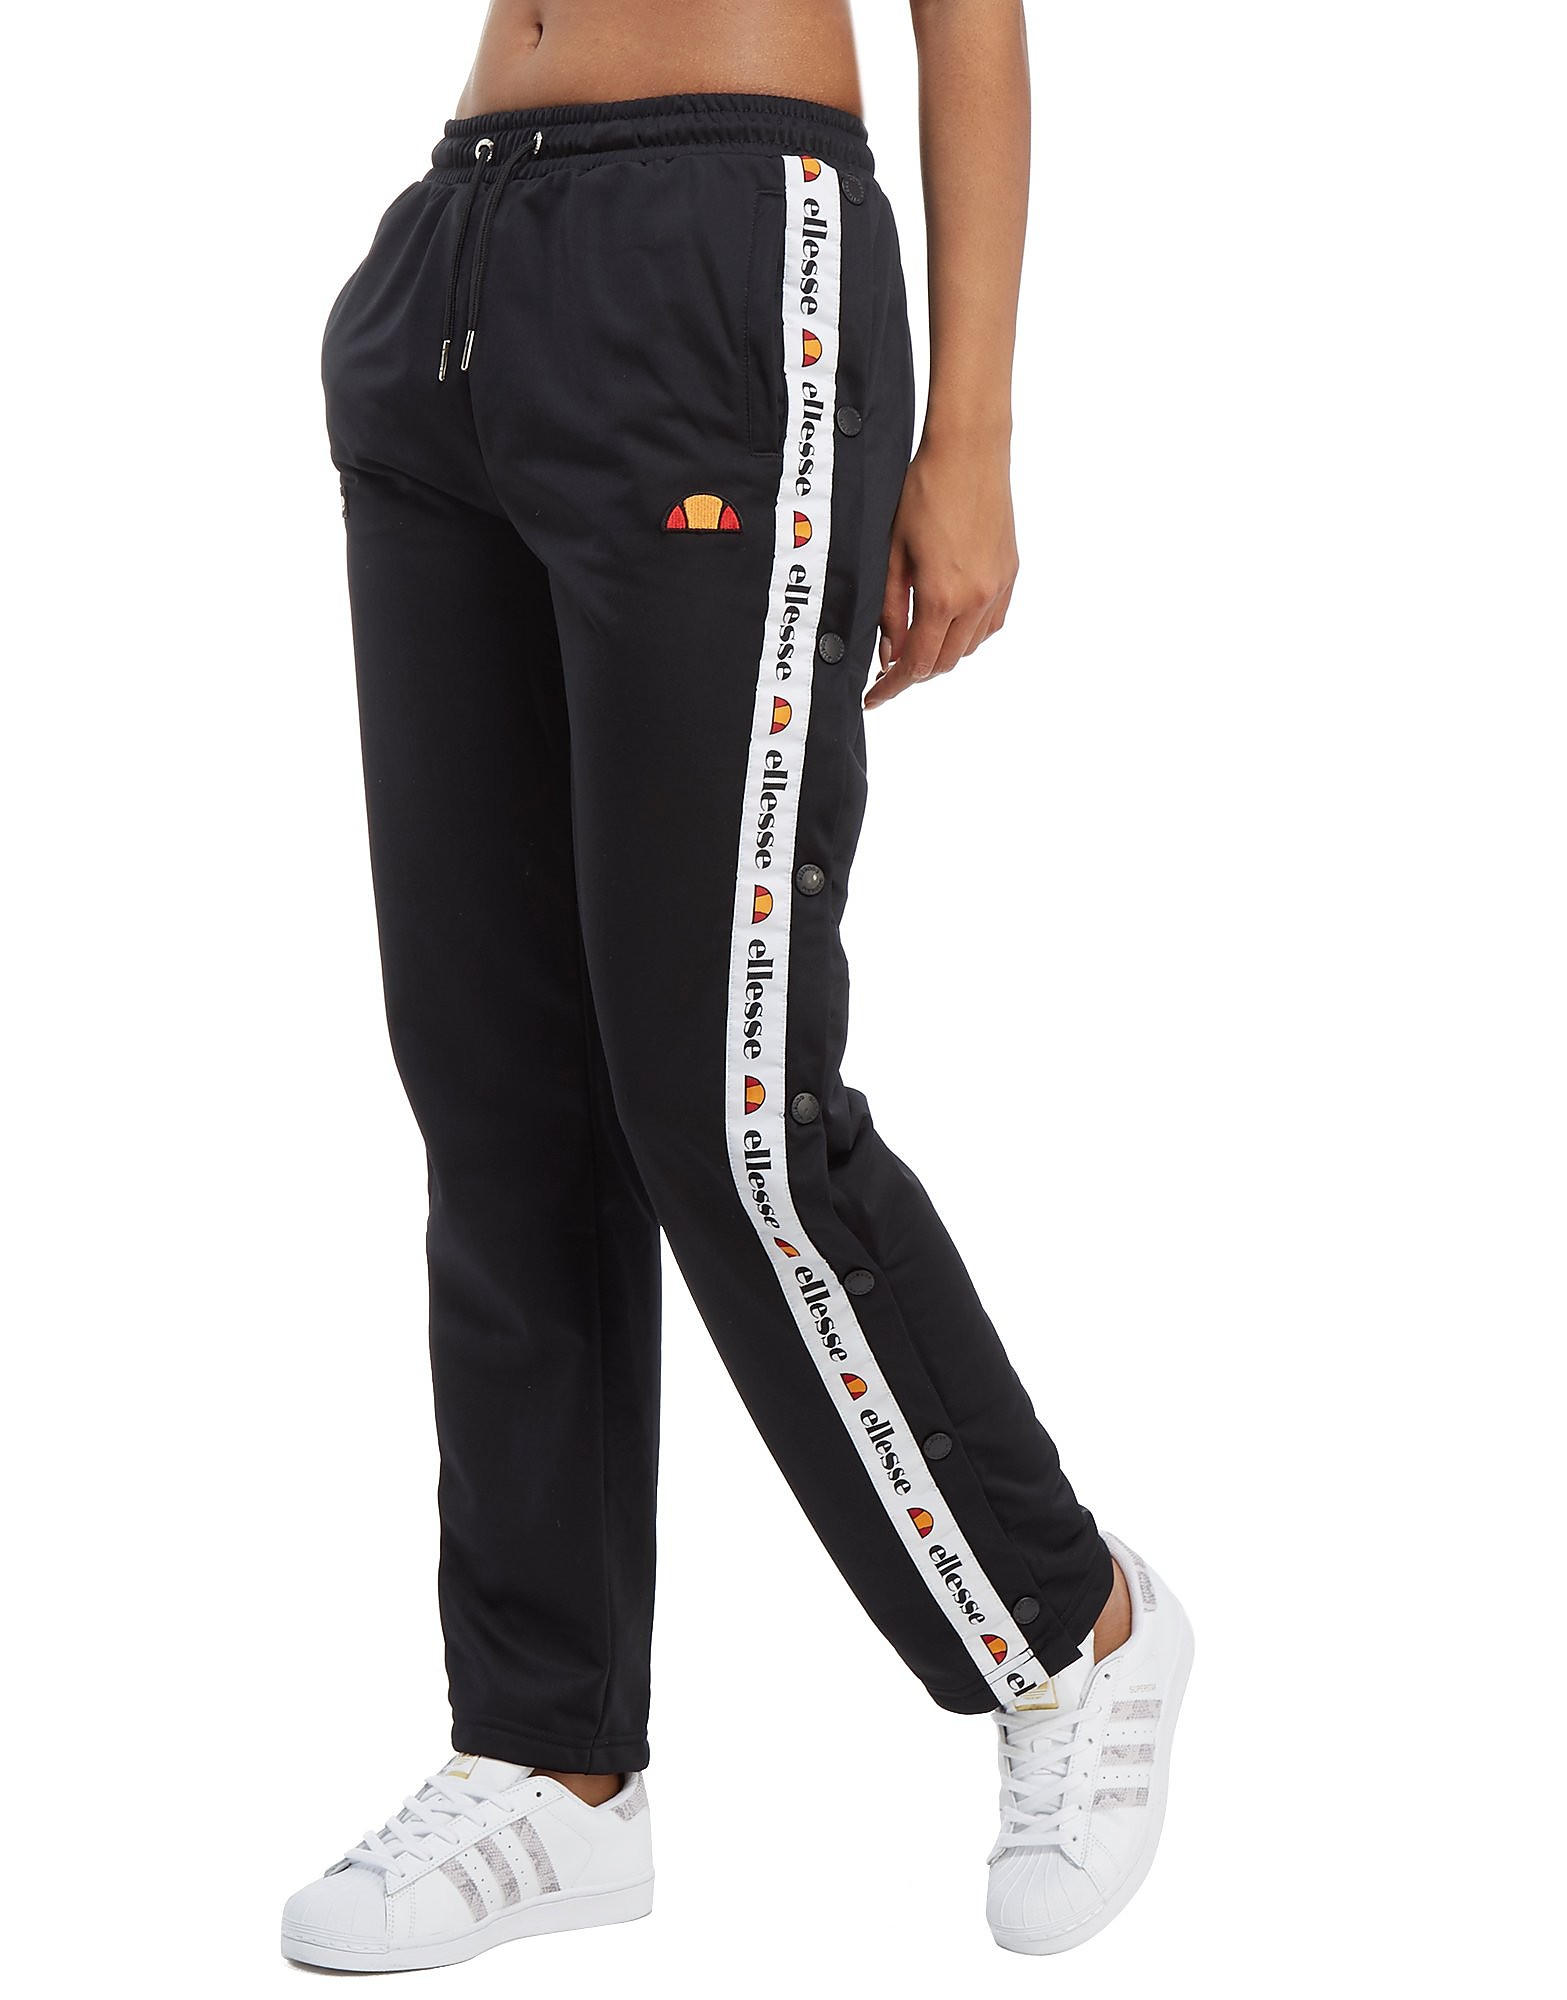 Ellesse Tape Popper Pants